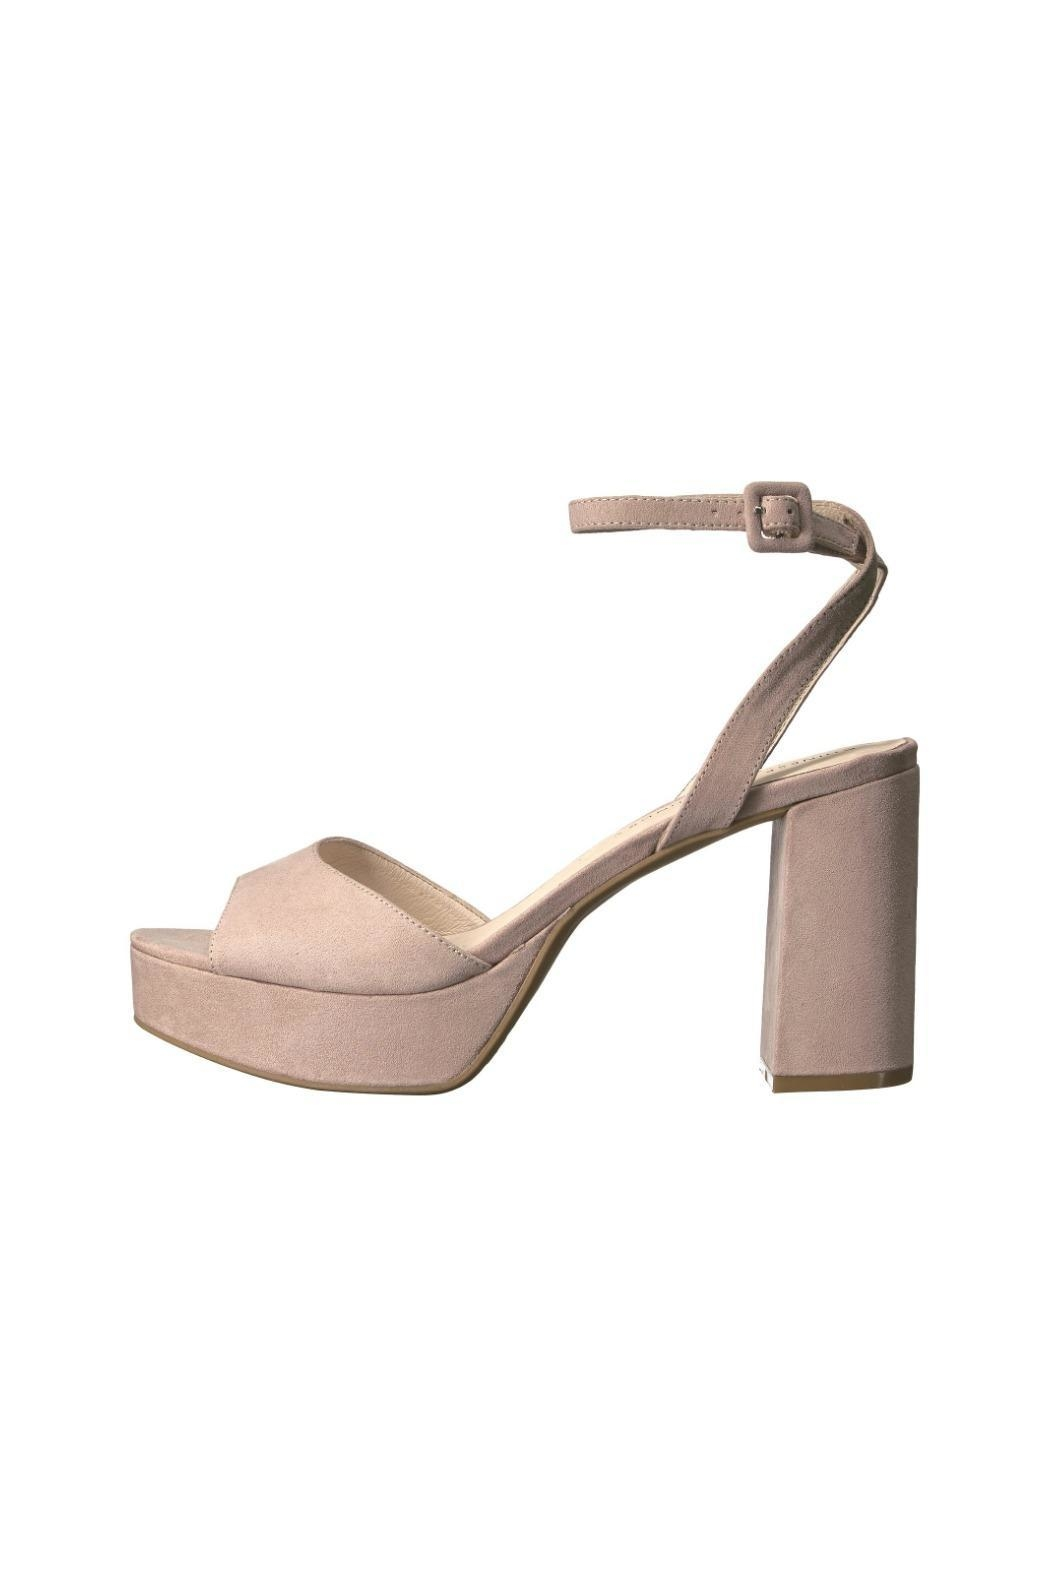 Chinese Laundry Theresa Platform Heel - Front Cropped Image